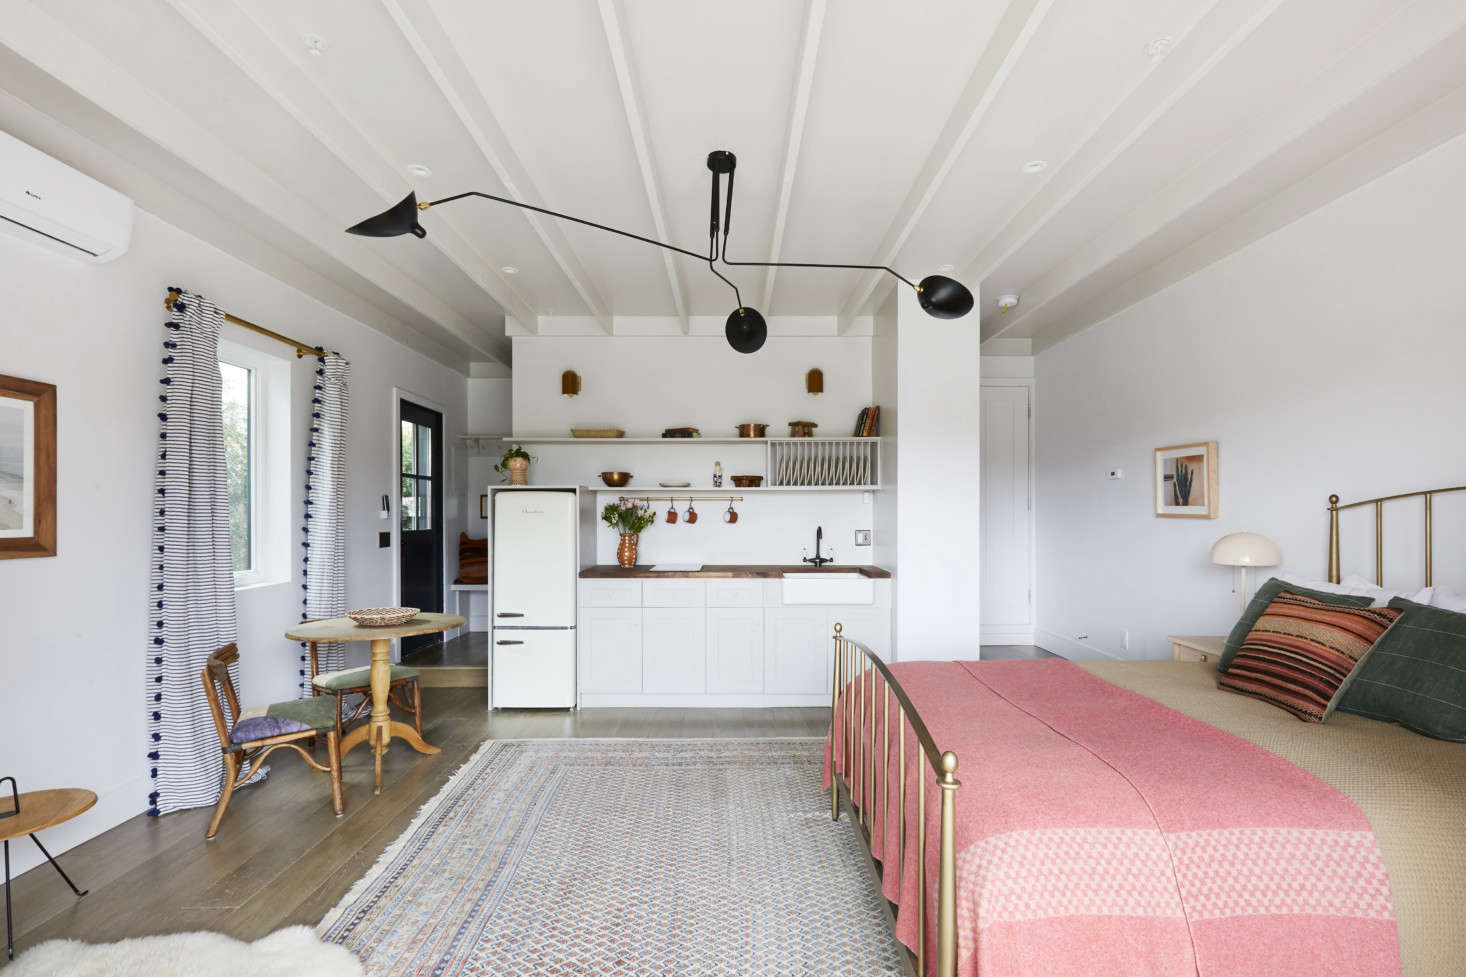 Margot found this great garage-turned-guest-house, complete with charming kitchenette. Photograph by Jessica Alexander, courtesy of Allprace Properties, from Found Space: A Garage-Turned-Backyard Cottage in LA.